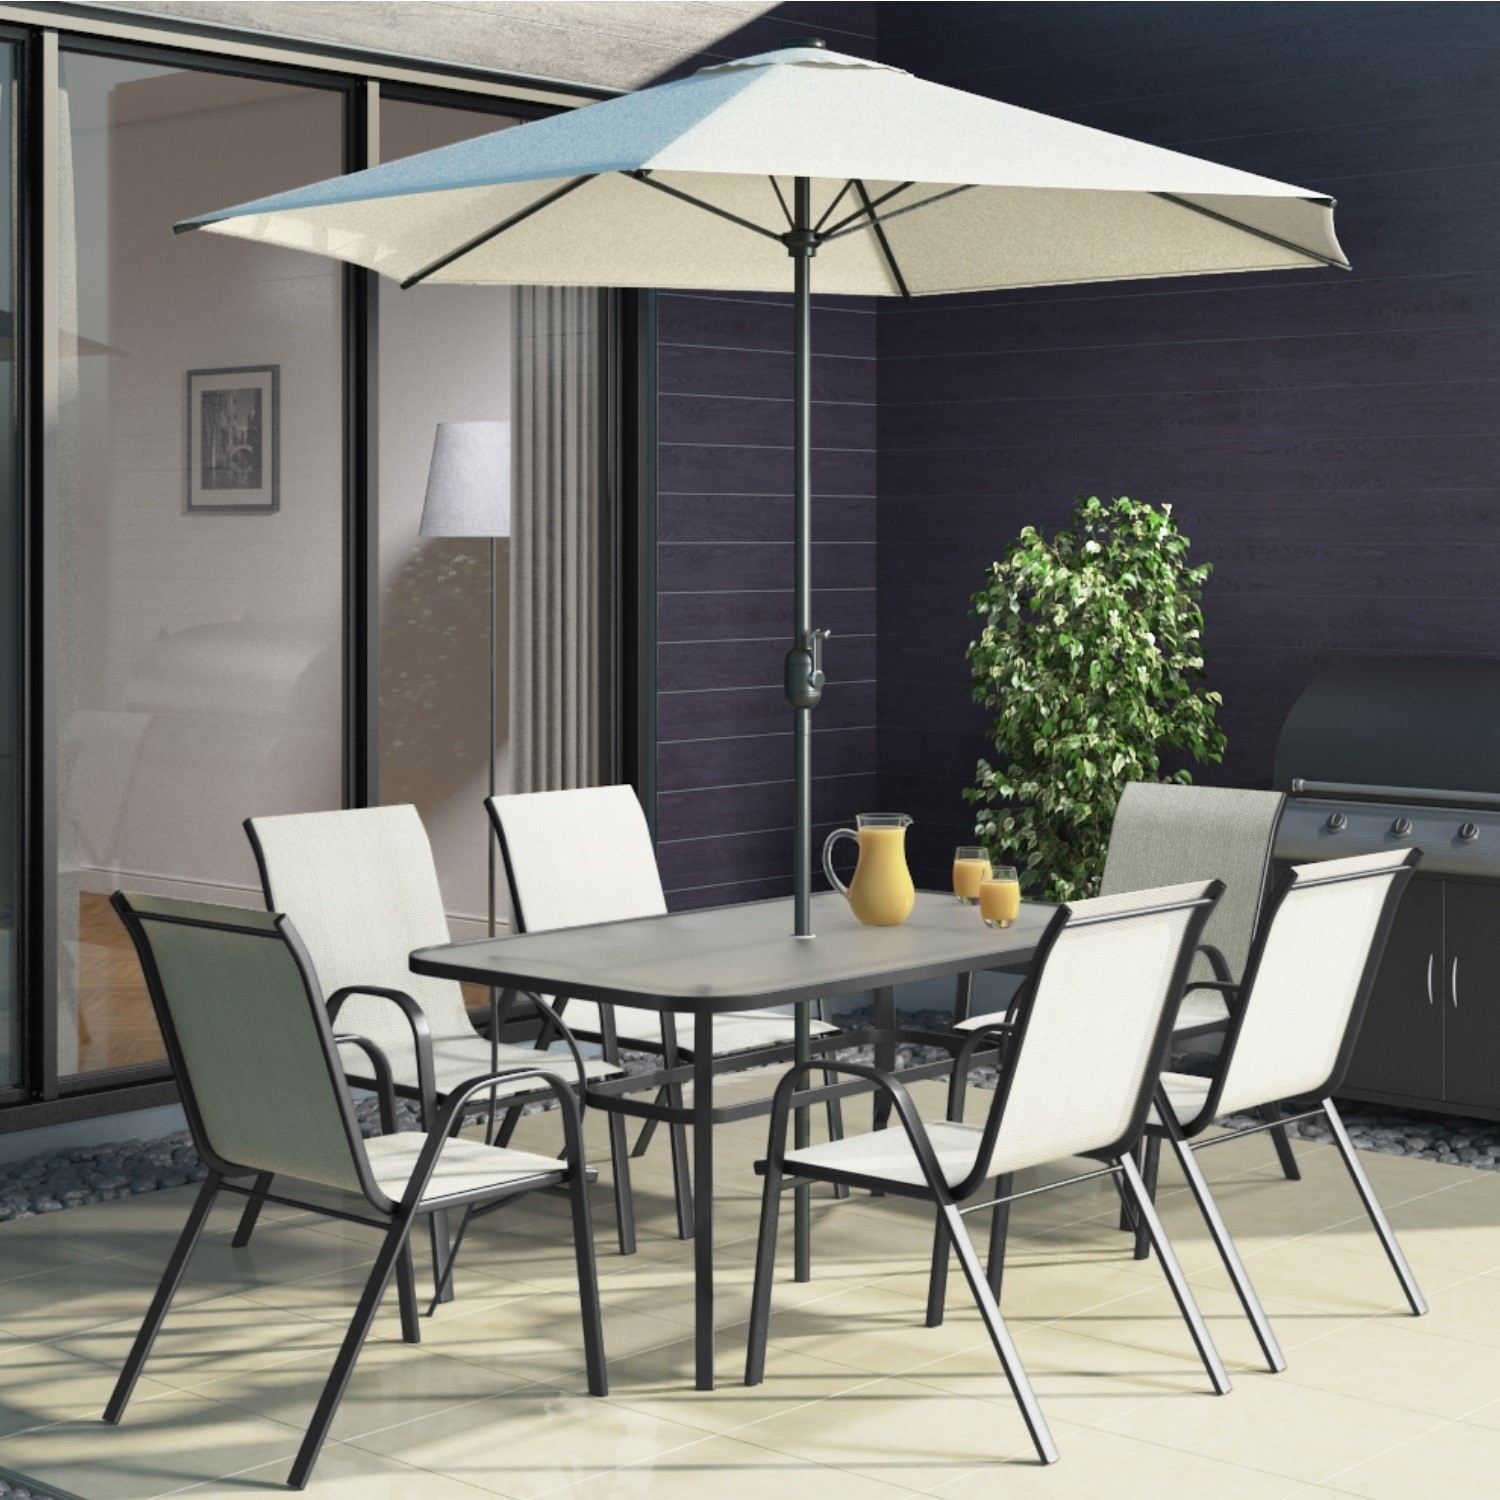 Black Metal And Cream 6 Seater Garden Furniture Set   Parasol Included